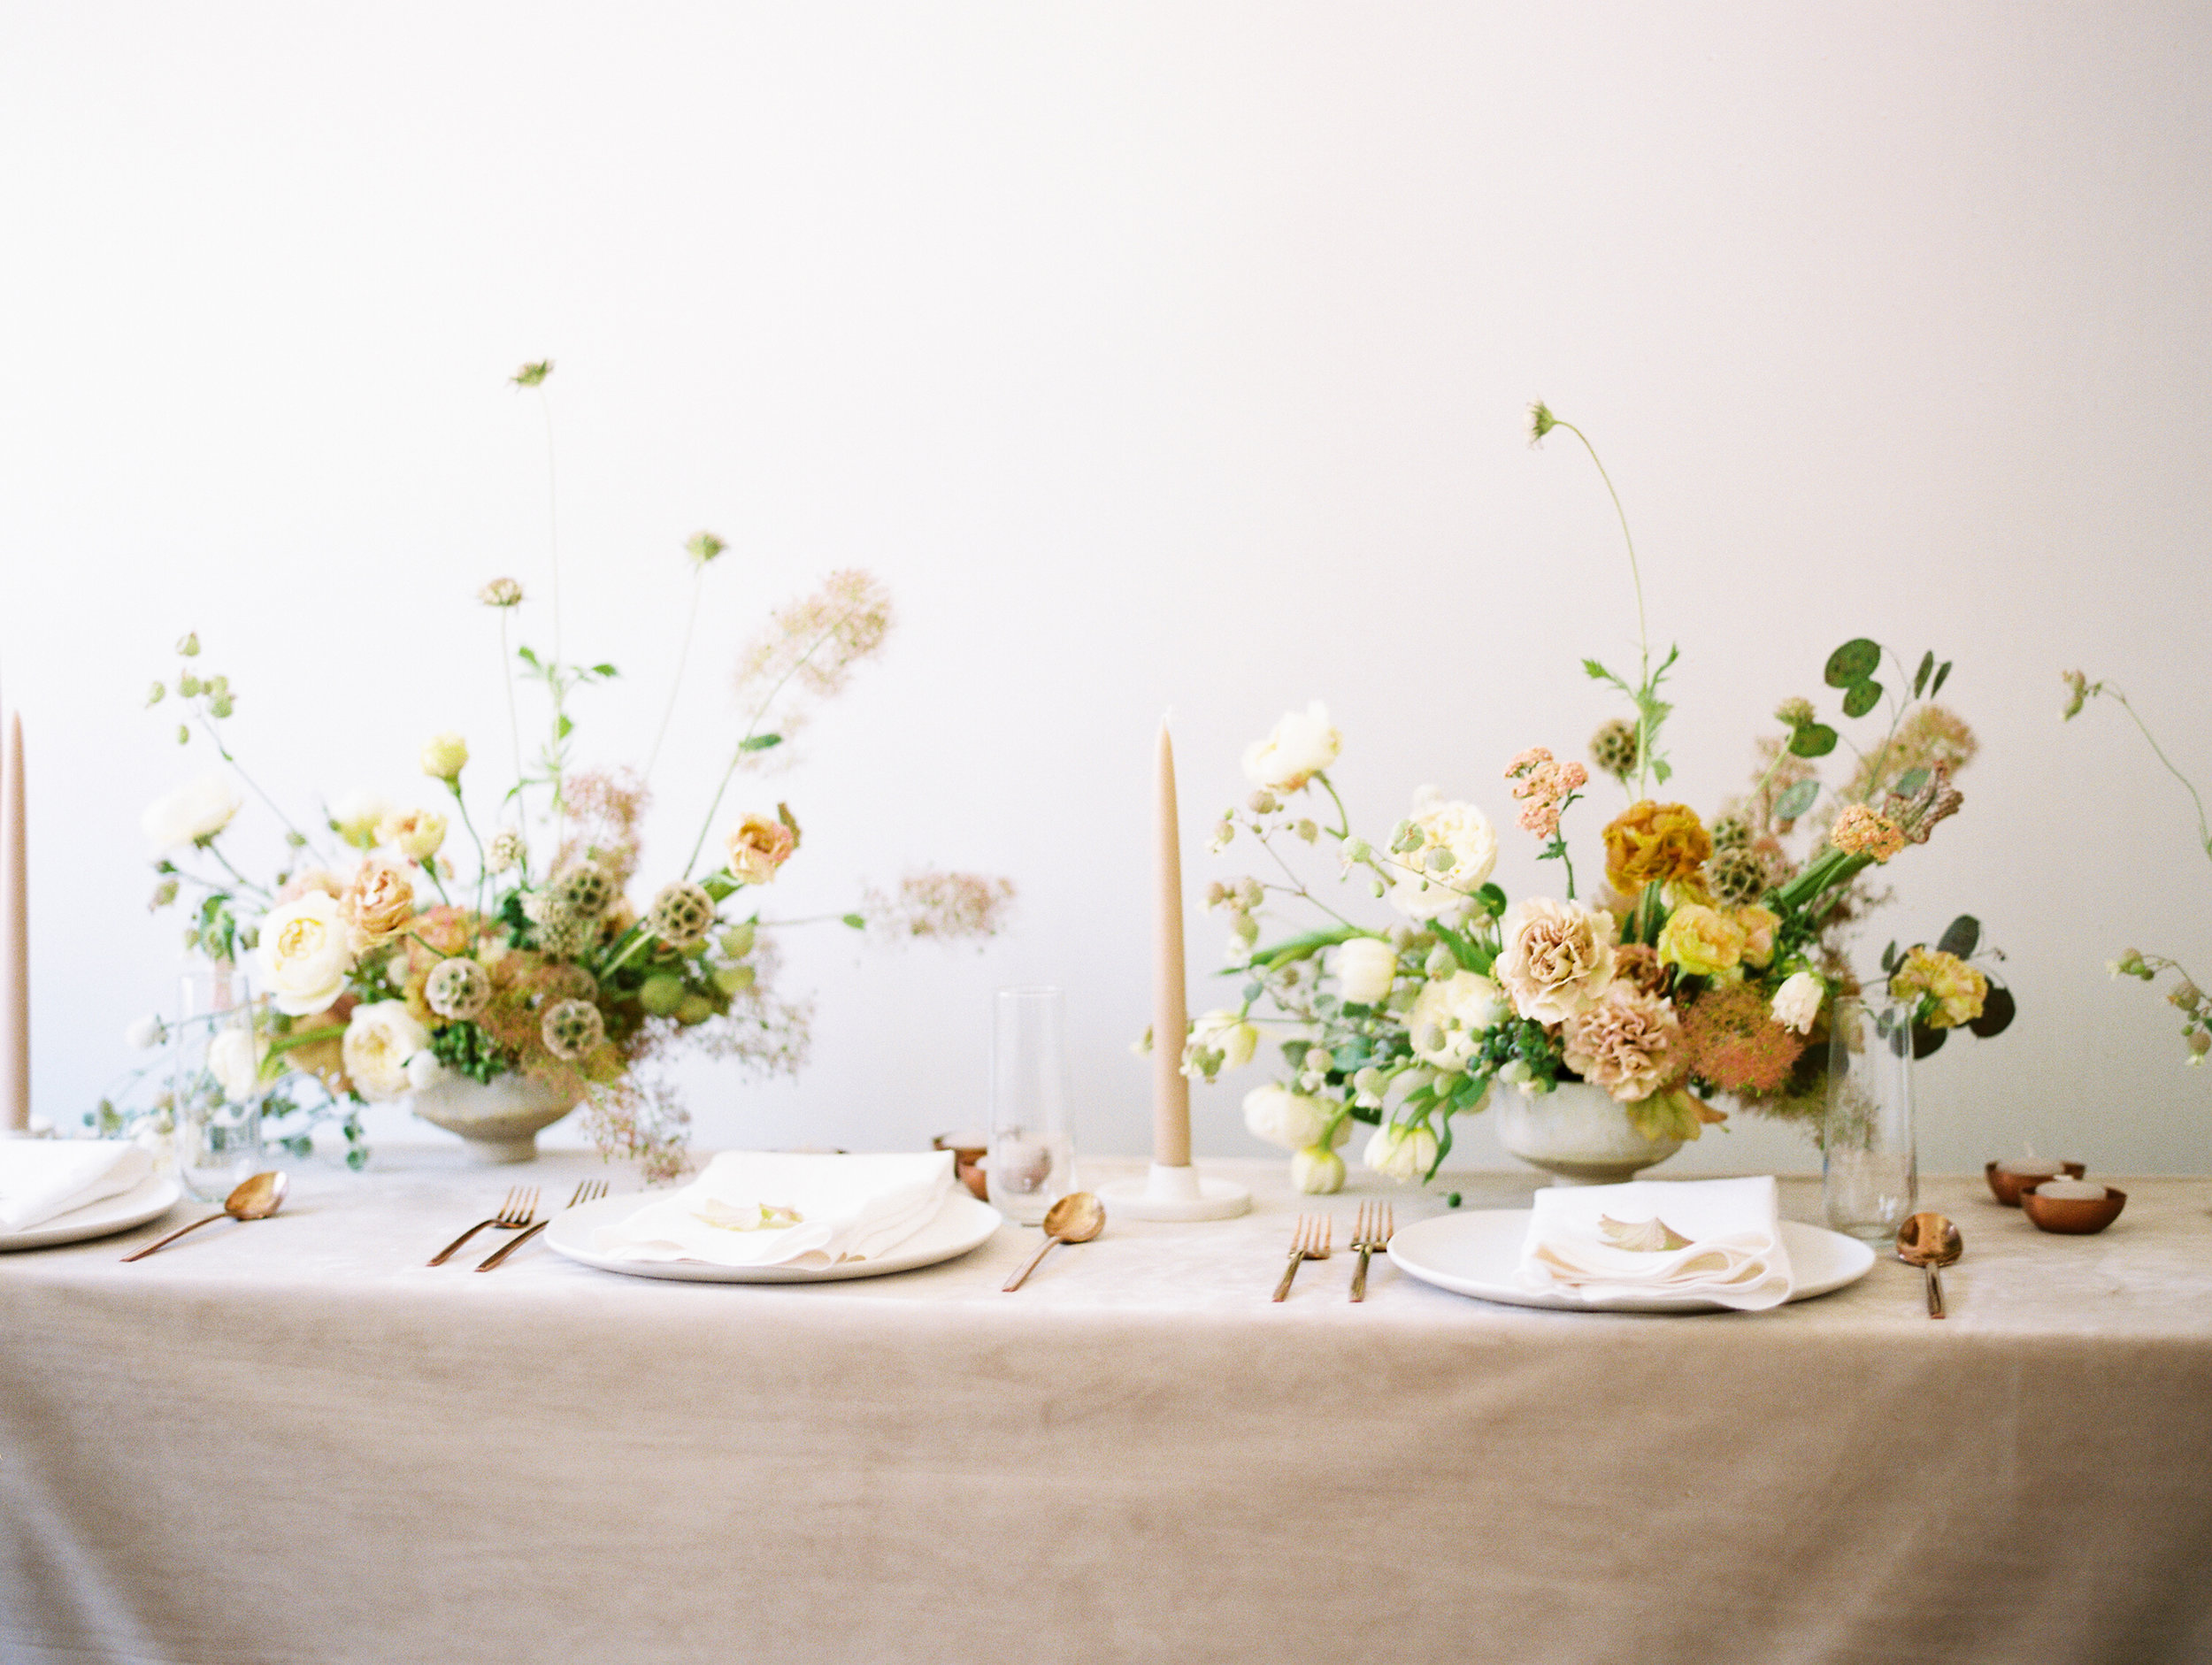 Tablescape6.jpg